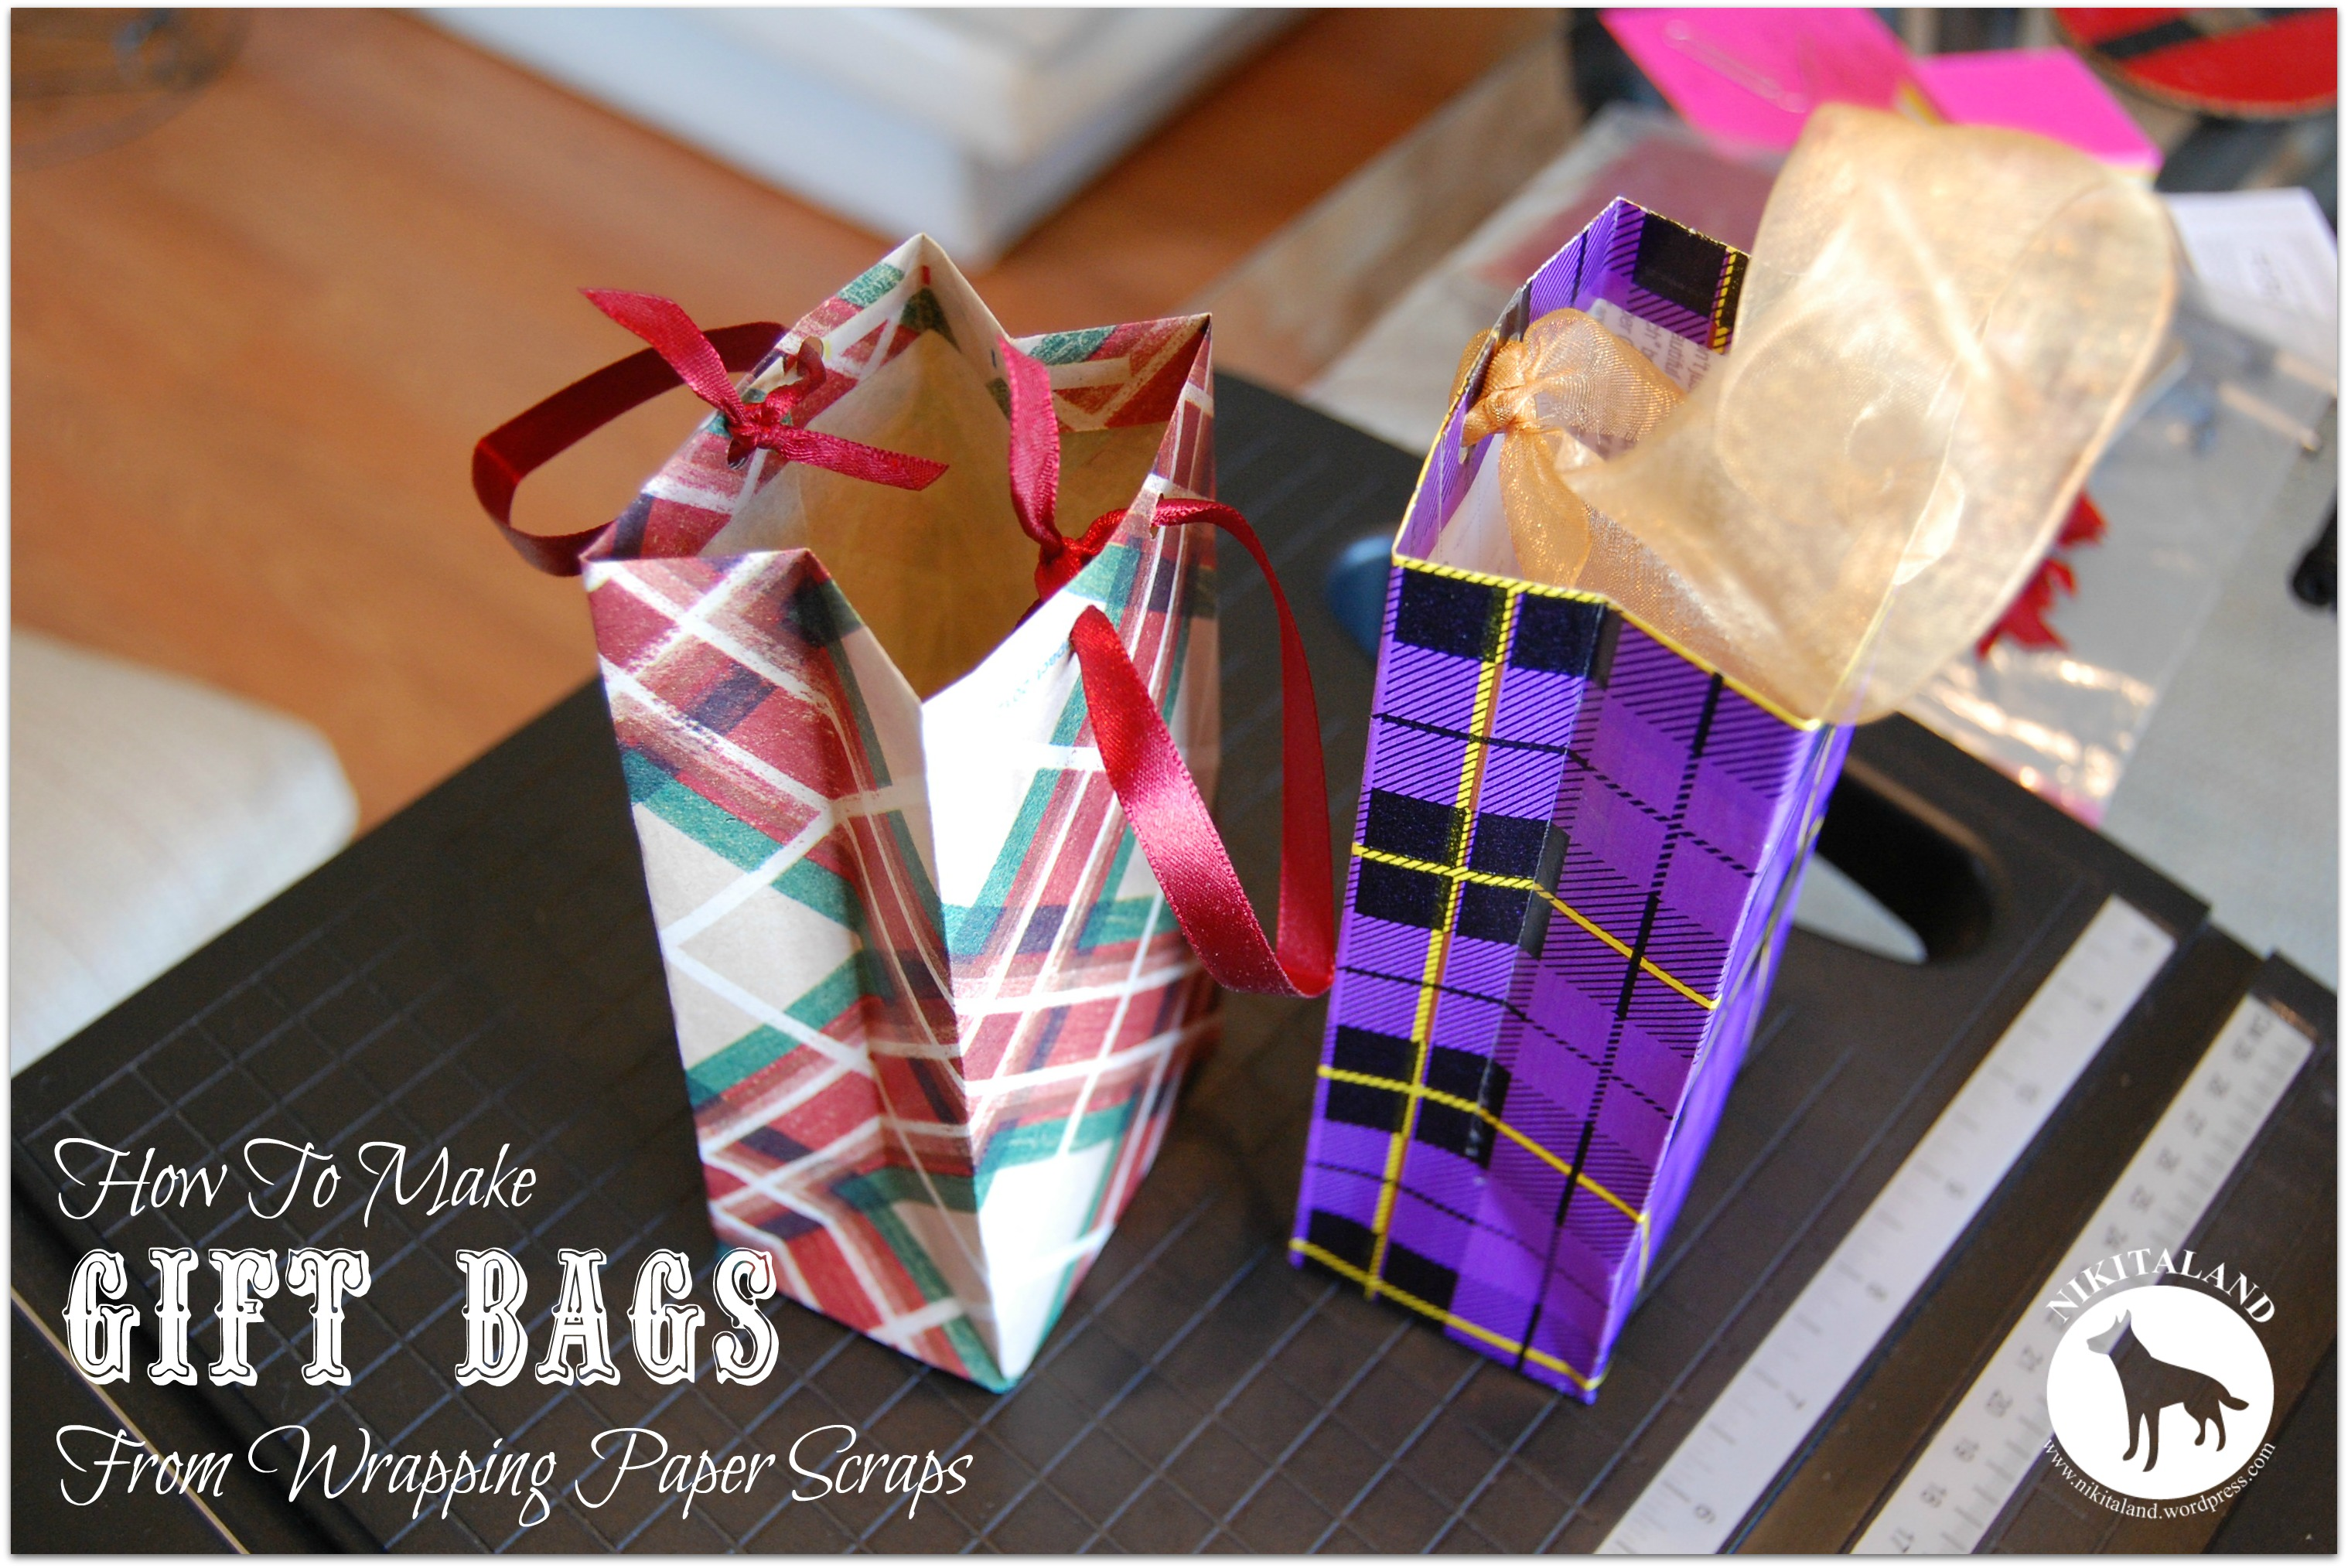 How To Make A Gift Bag From Wrapping Paper Scraps | Nikitaland